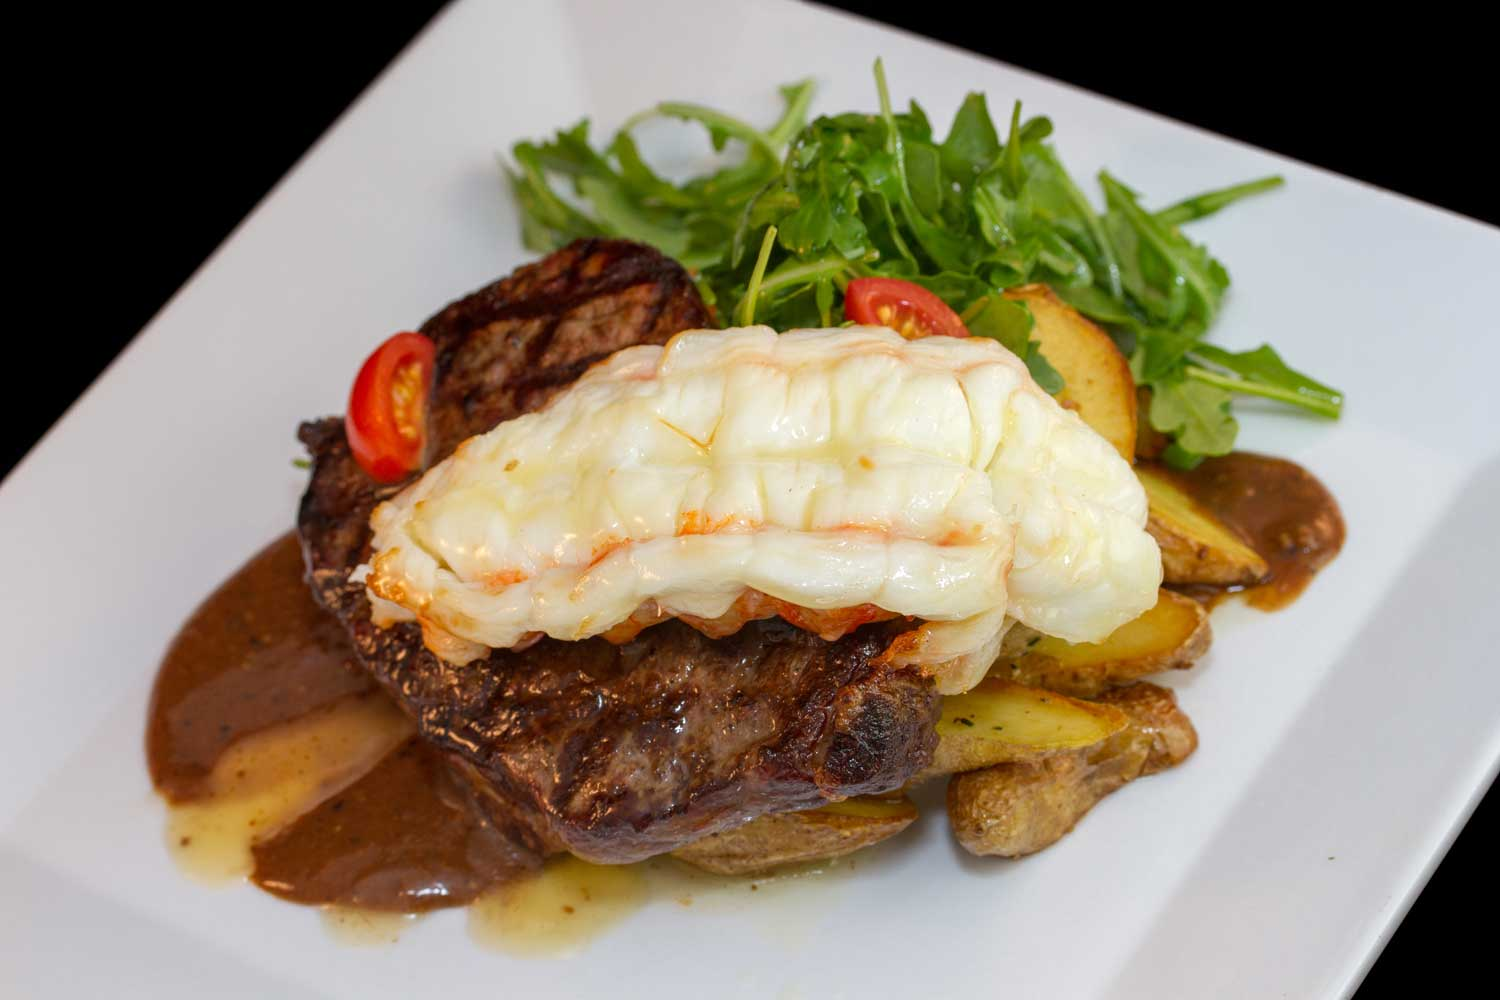 Filet and Lobster prepared by Mount Hill Tavern